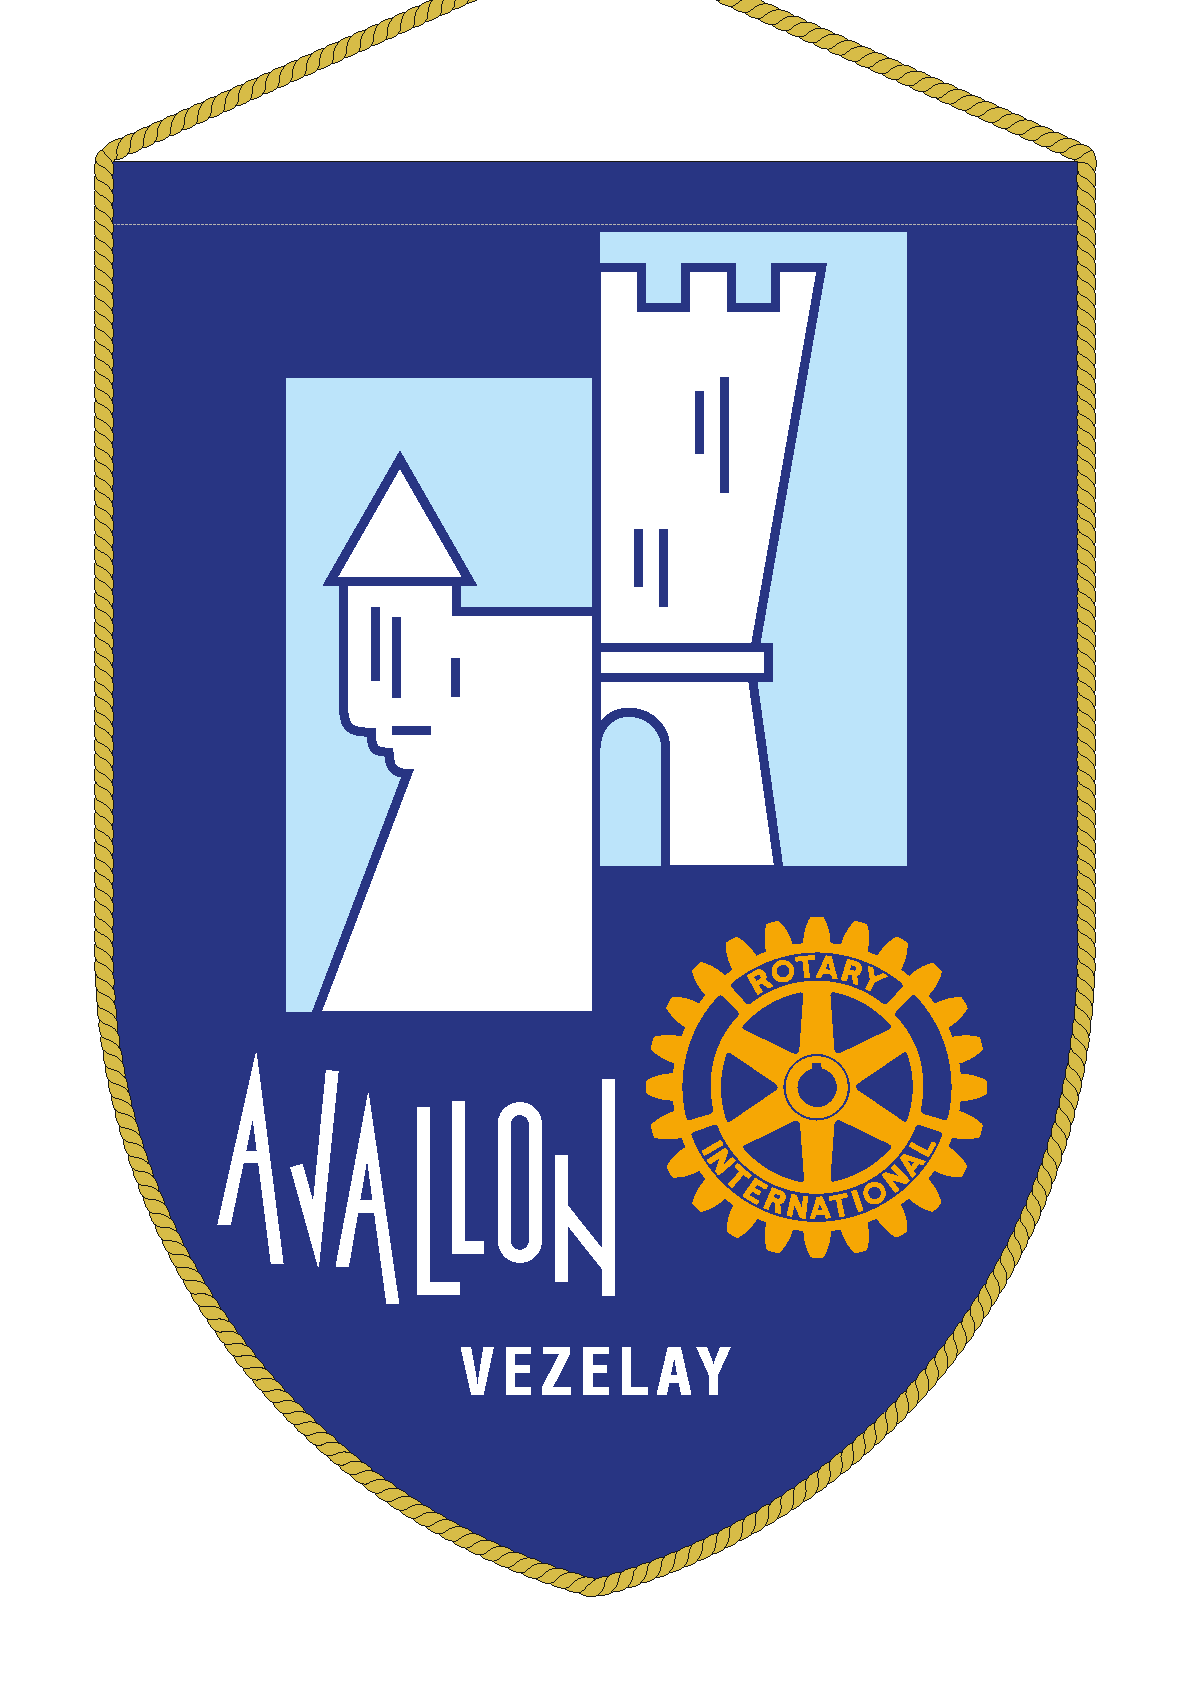 FANION ROTARY CLUB AVALLON VEZELAY